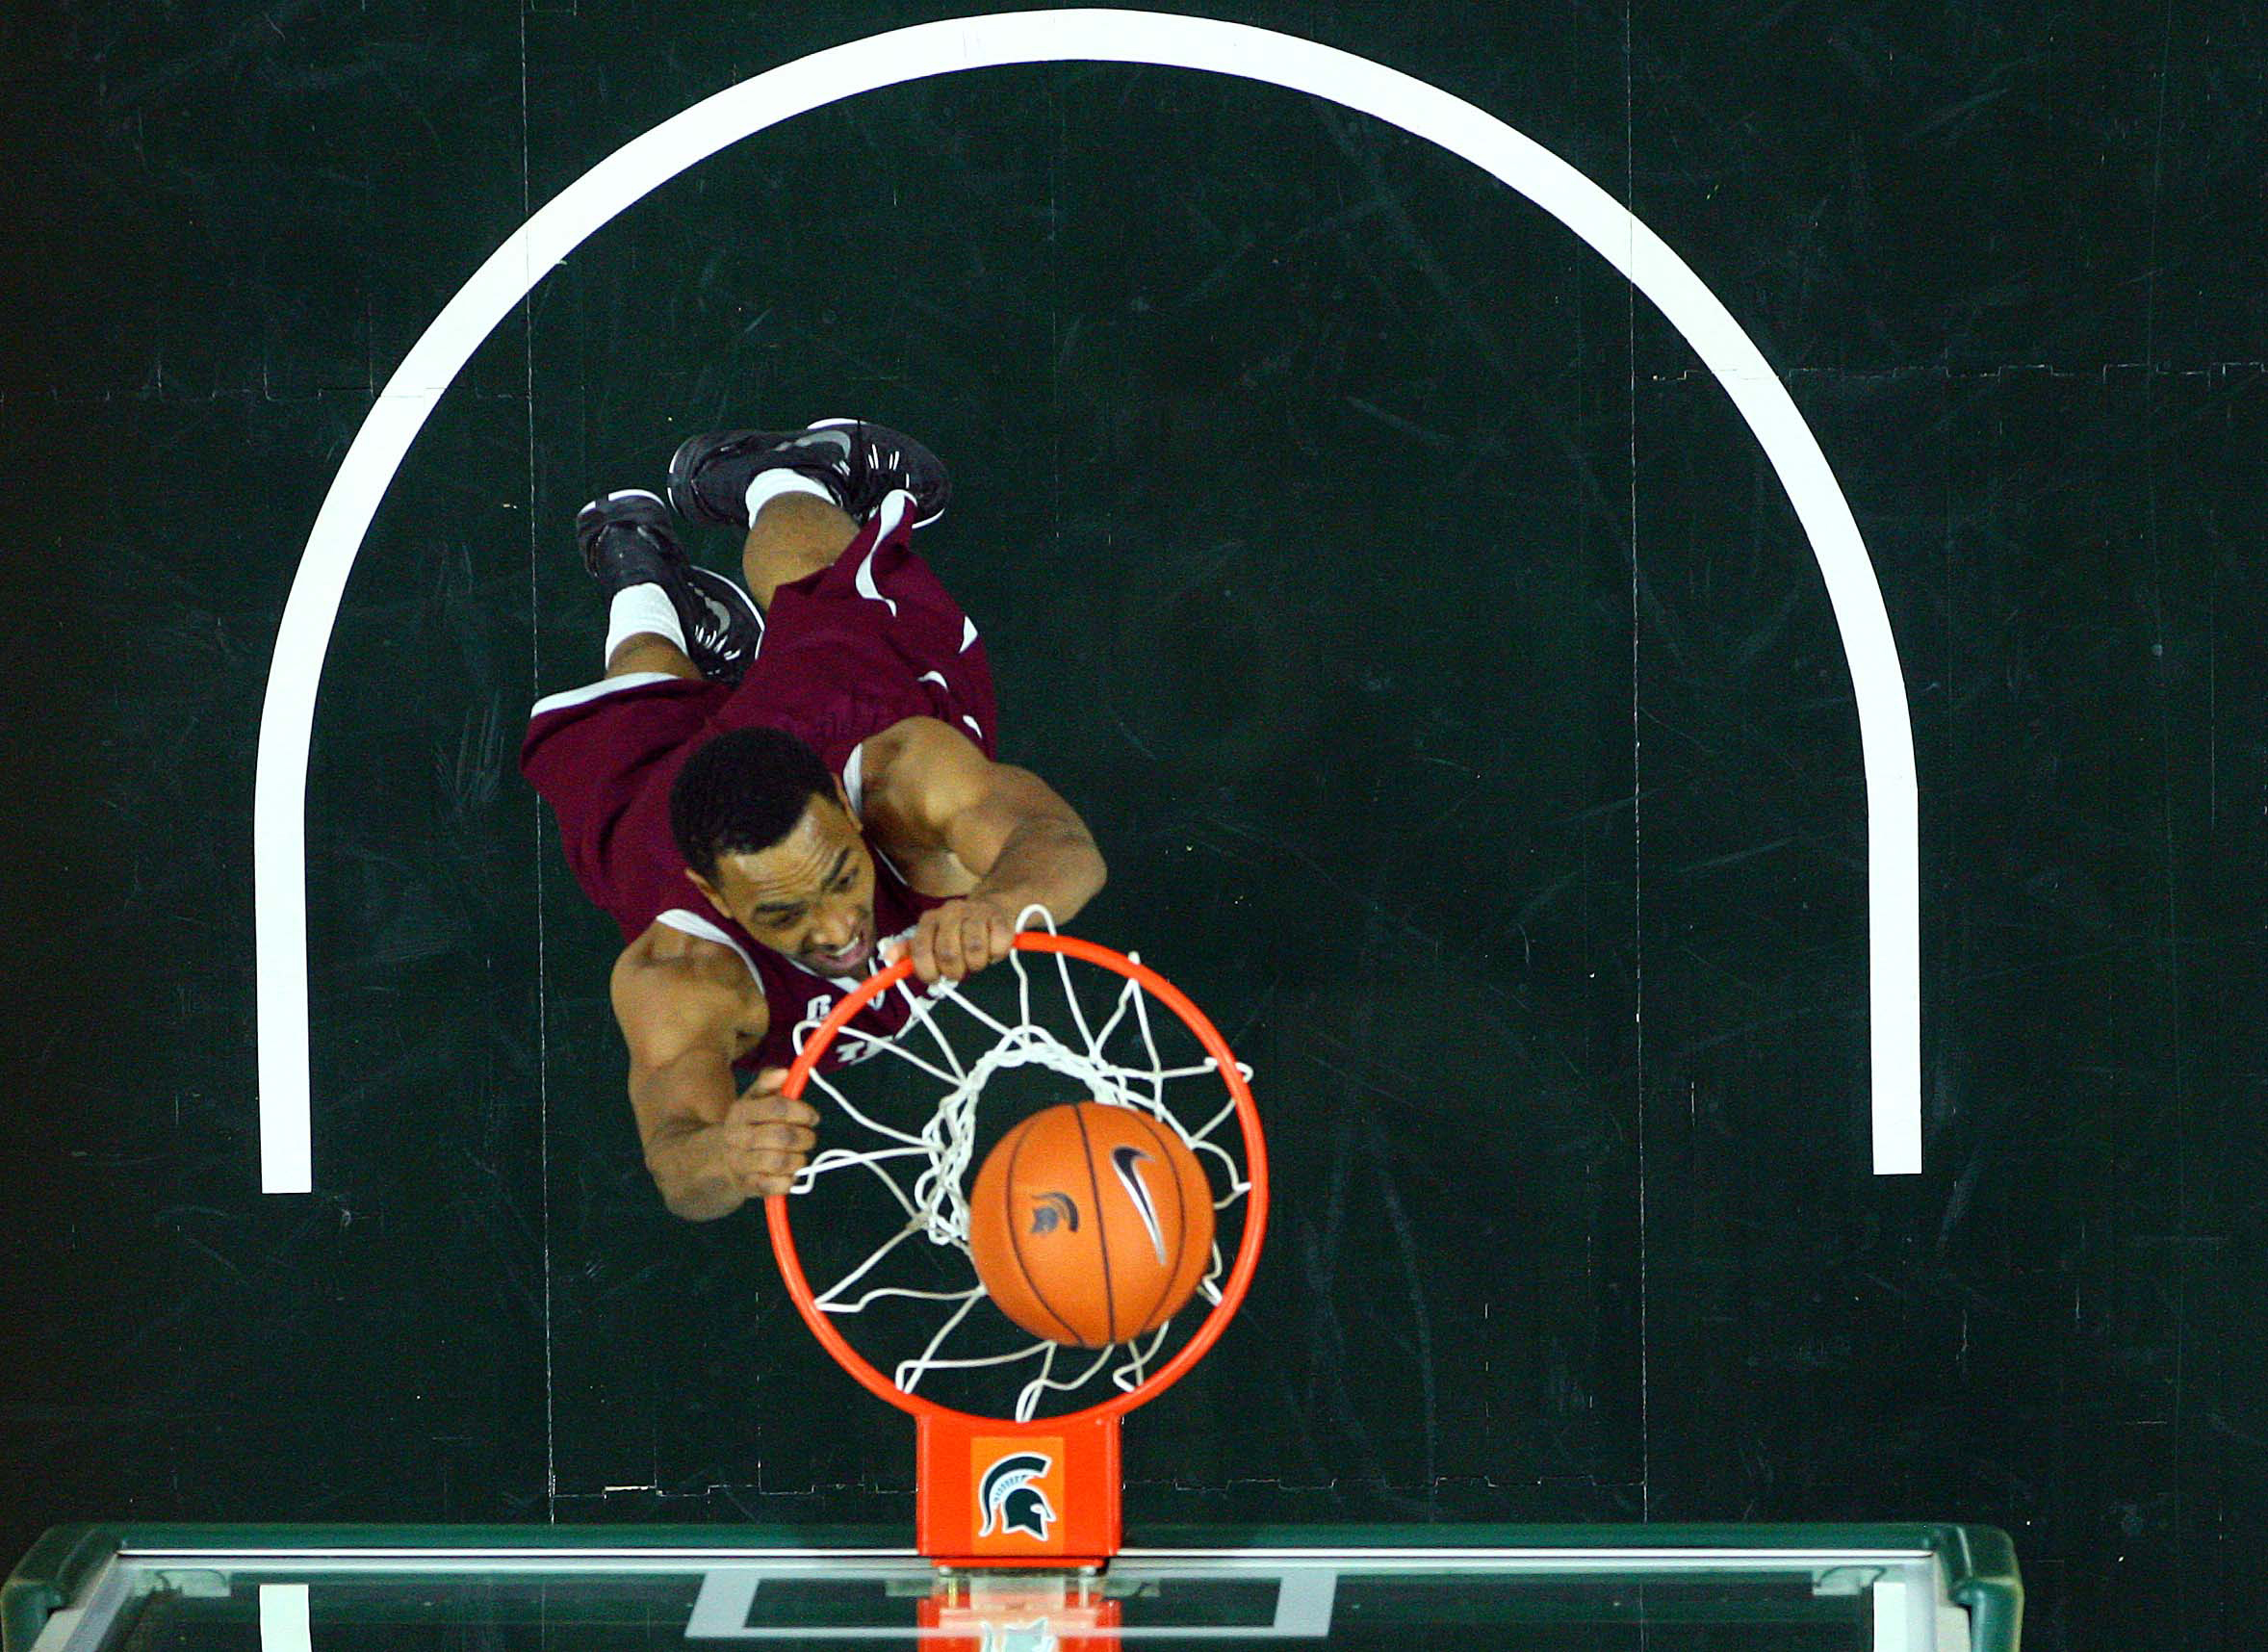 Texas Southern Tigers forward Malcolm Riley (11) dunks the ball against the Michigan State Spartans during the 2nd half of a game at Jack Breslin Student Events Center.